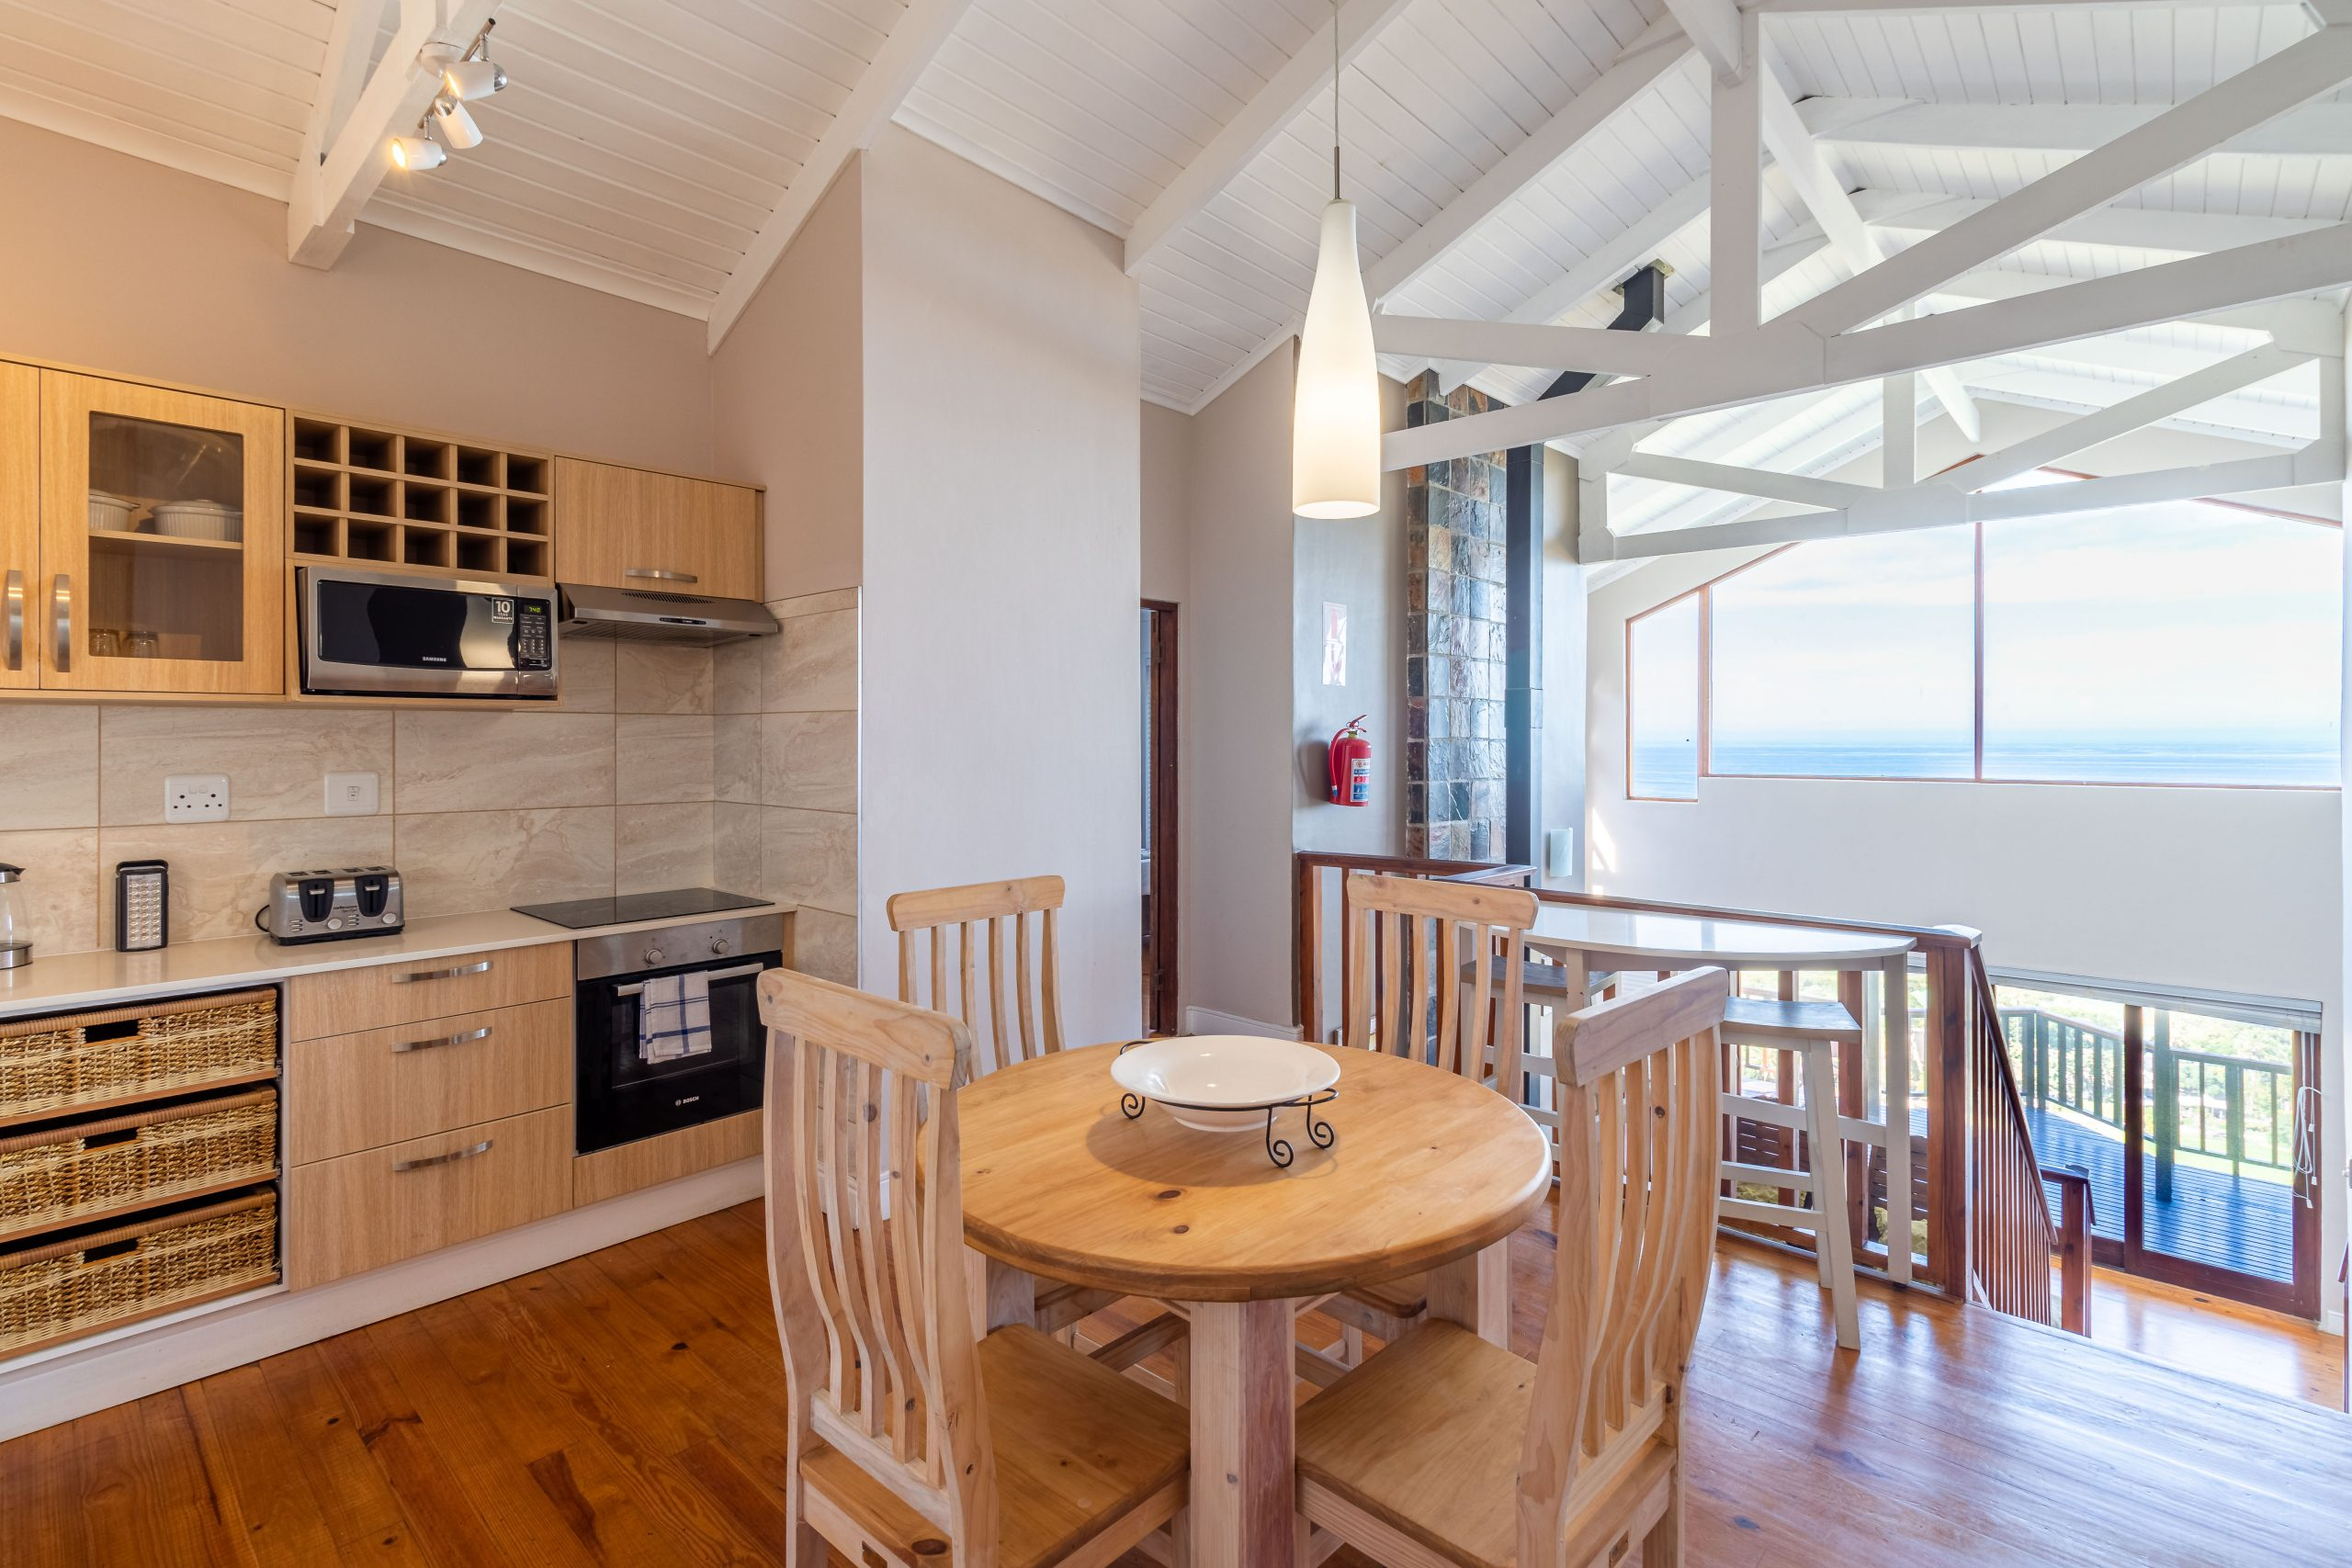 Boardwalk Lodge Duplex B&B or SC Chalets